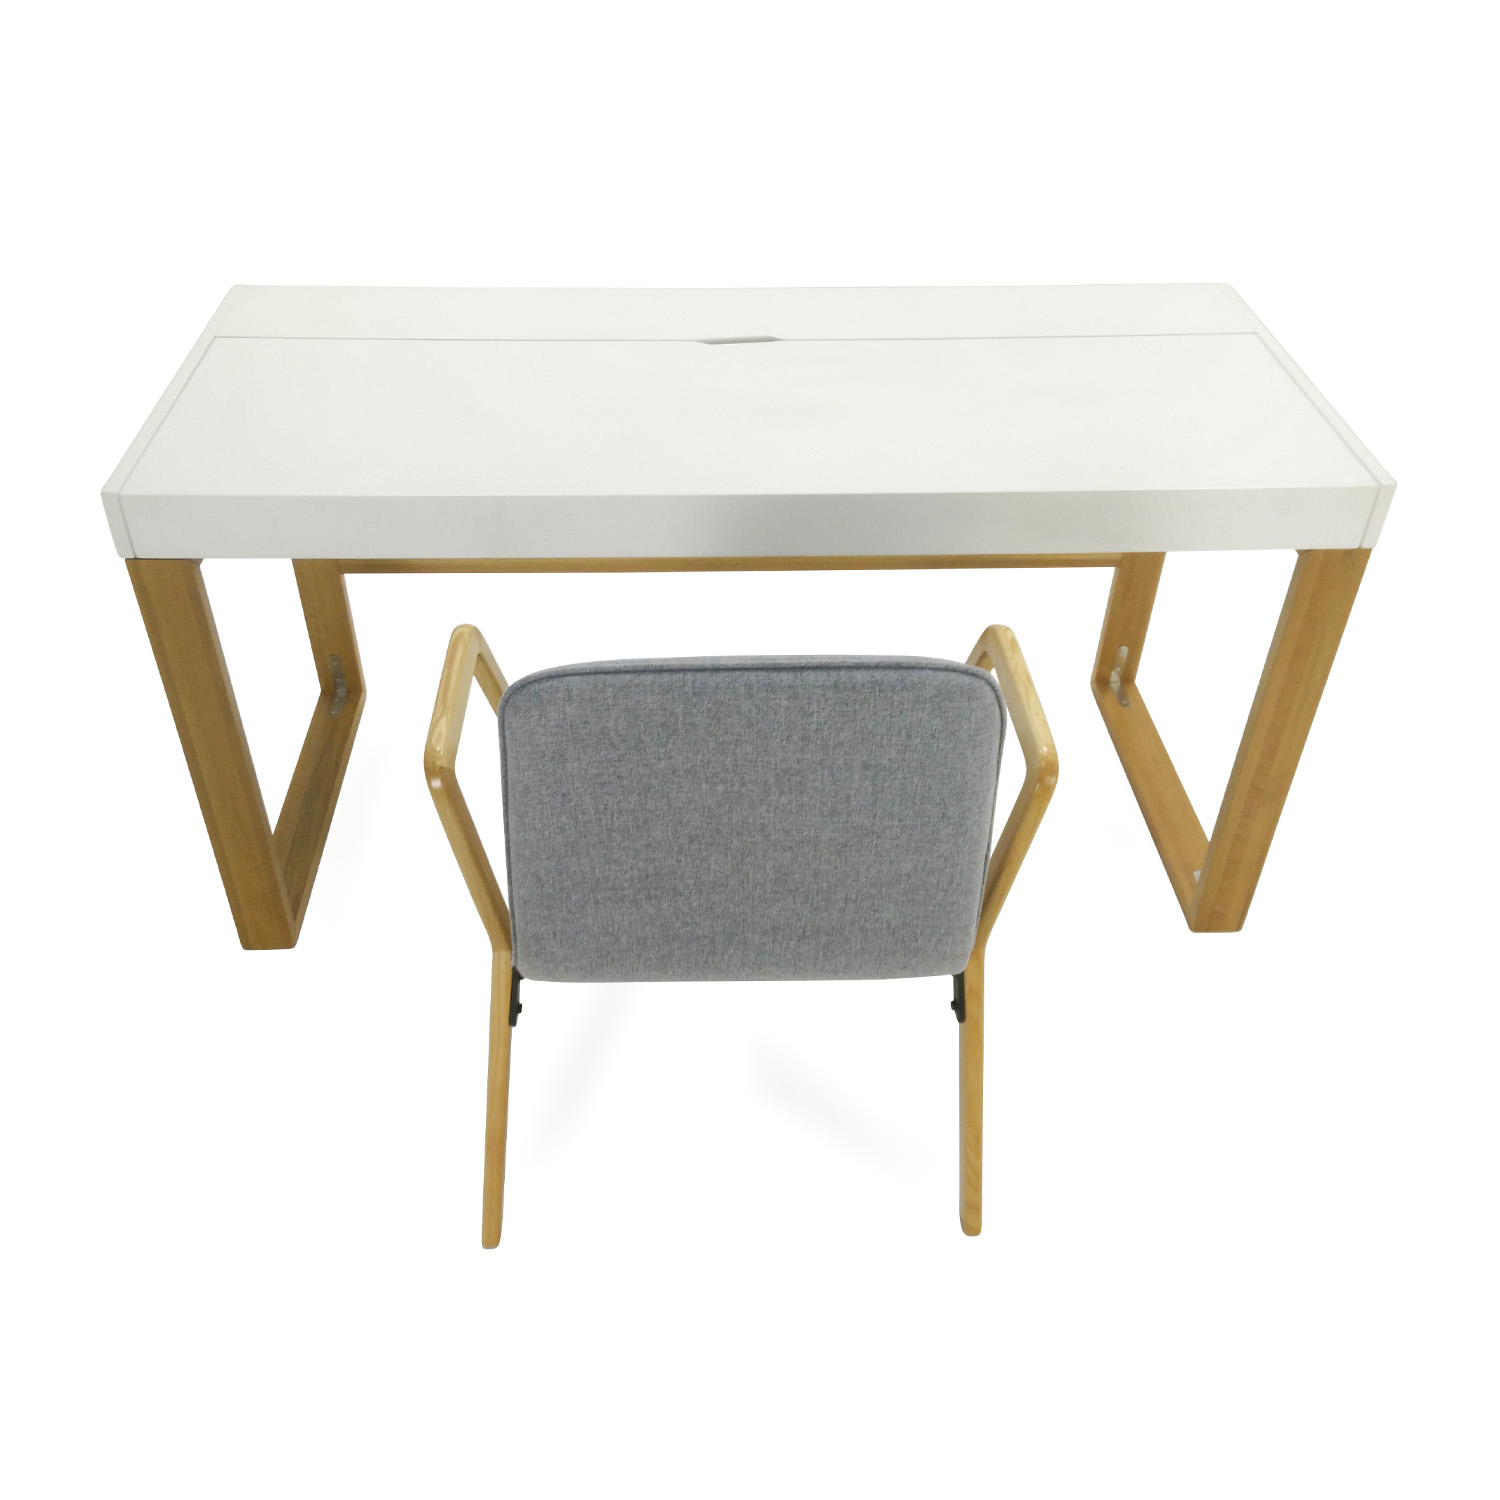 CB2 CB2 Chamber Desk Set Tables